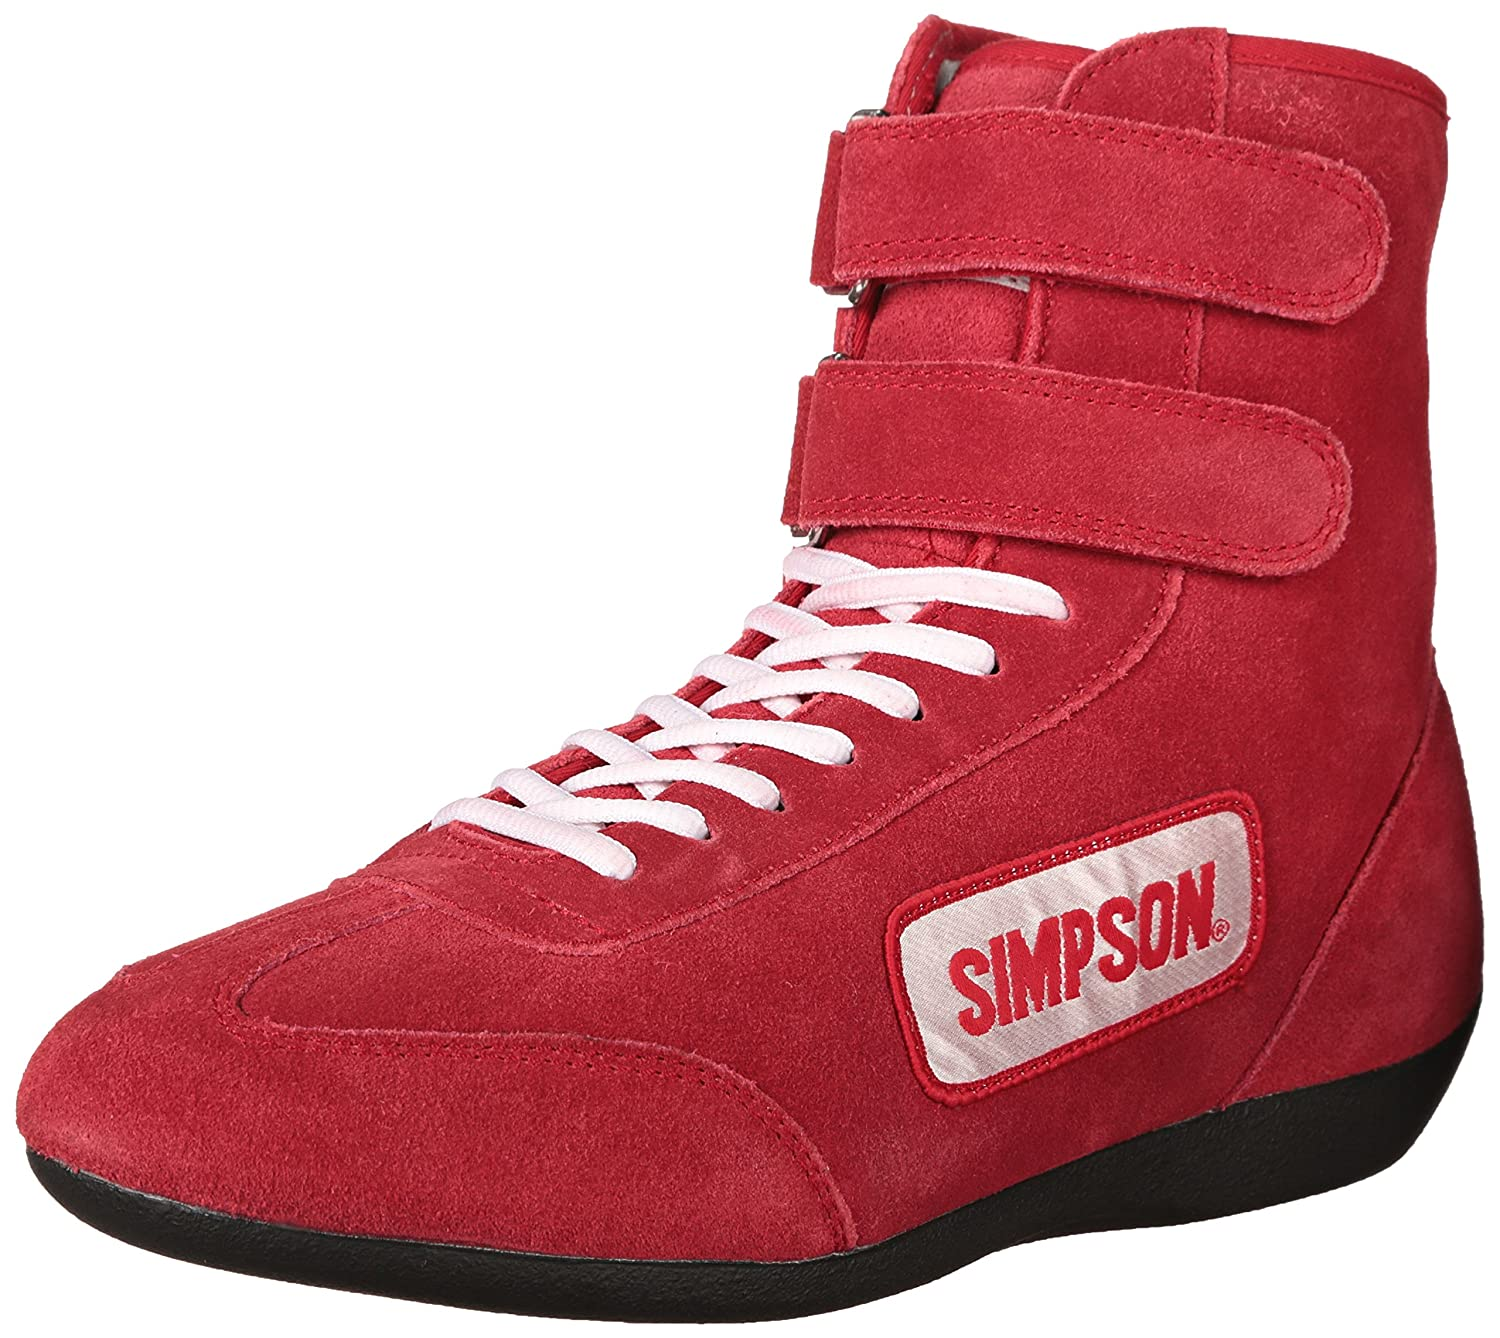 Amazon Simpson R Red High Top Leather Driving Shoe Automotive